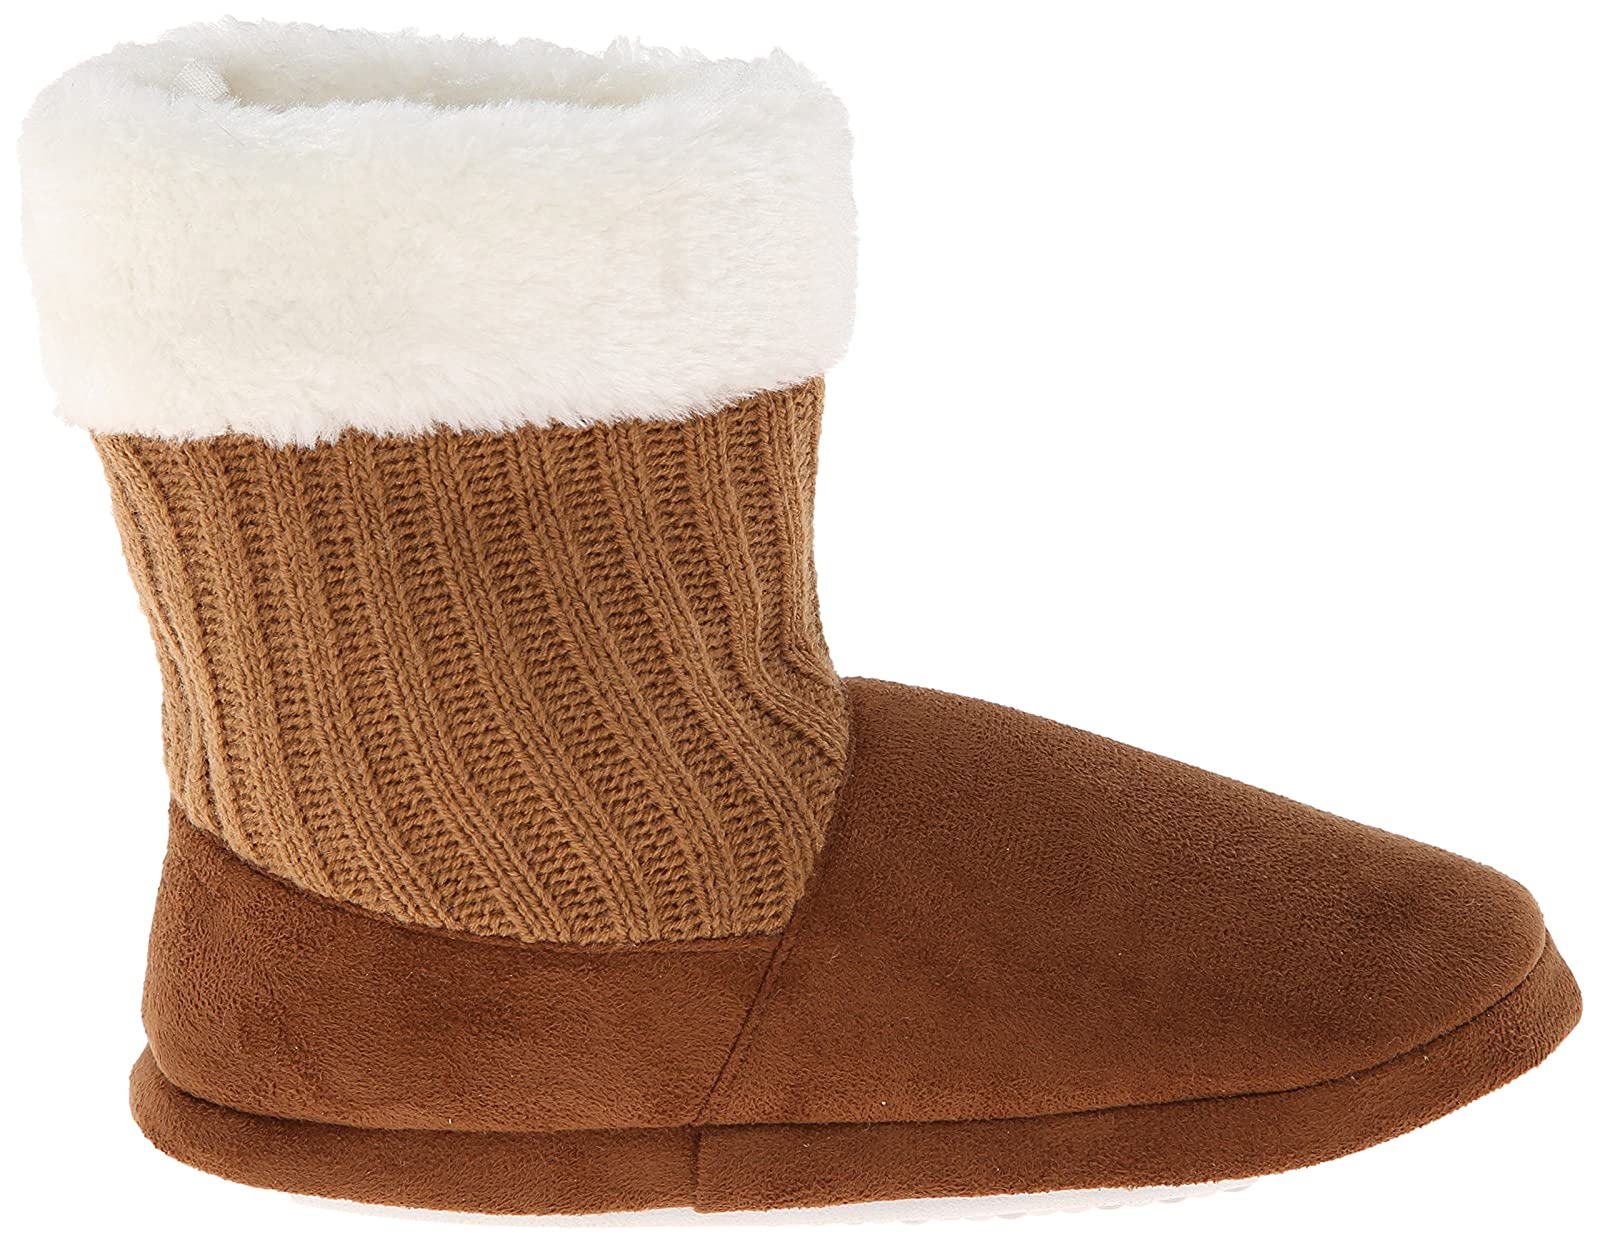 Gold Toe Women's Pom Pom Pom - 7